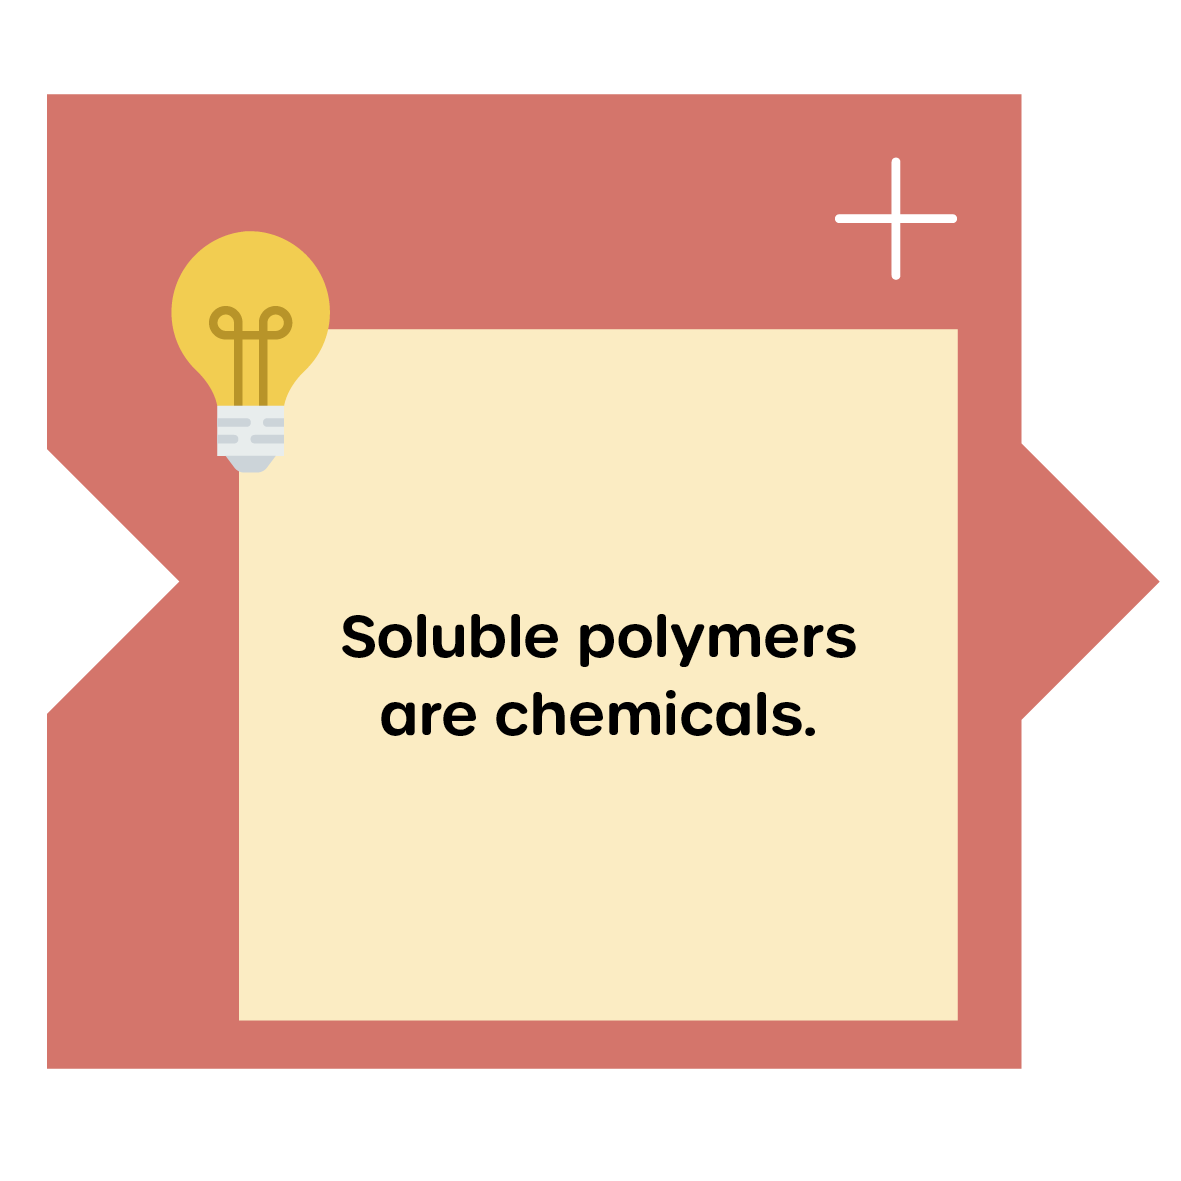 Soluble polymers are chemicals